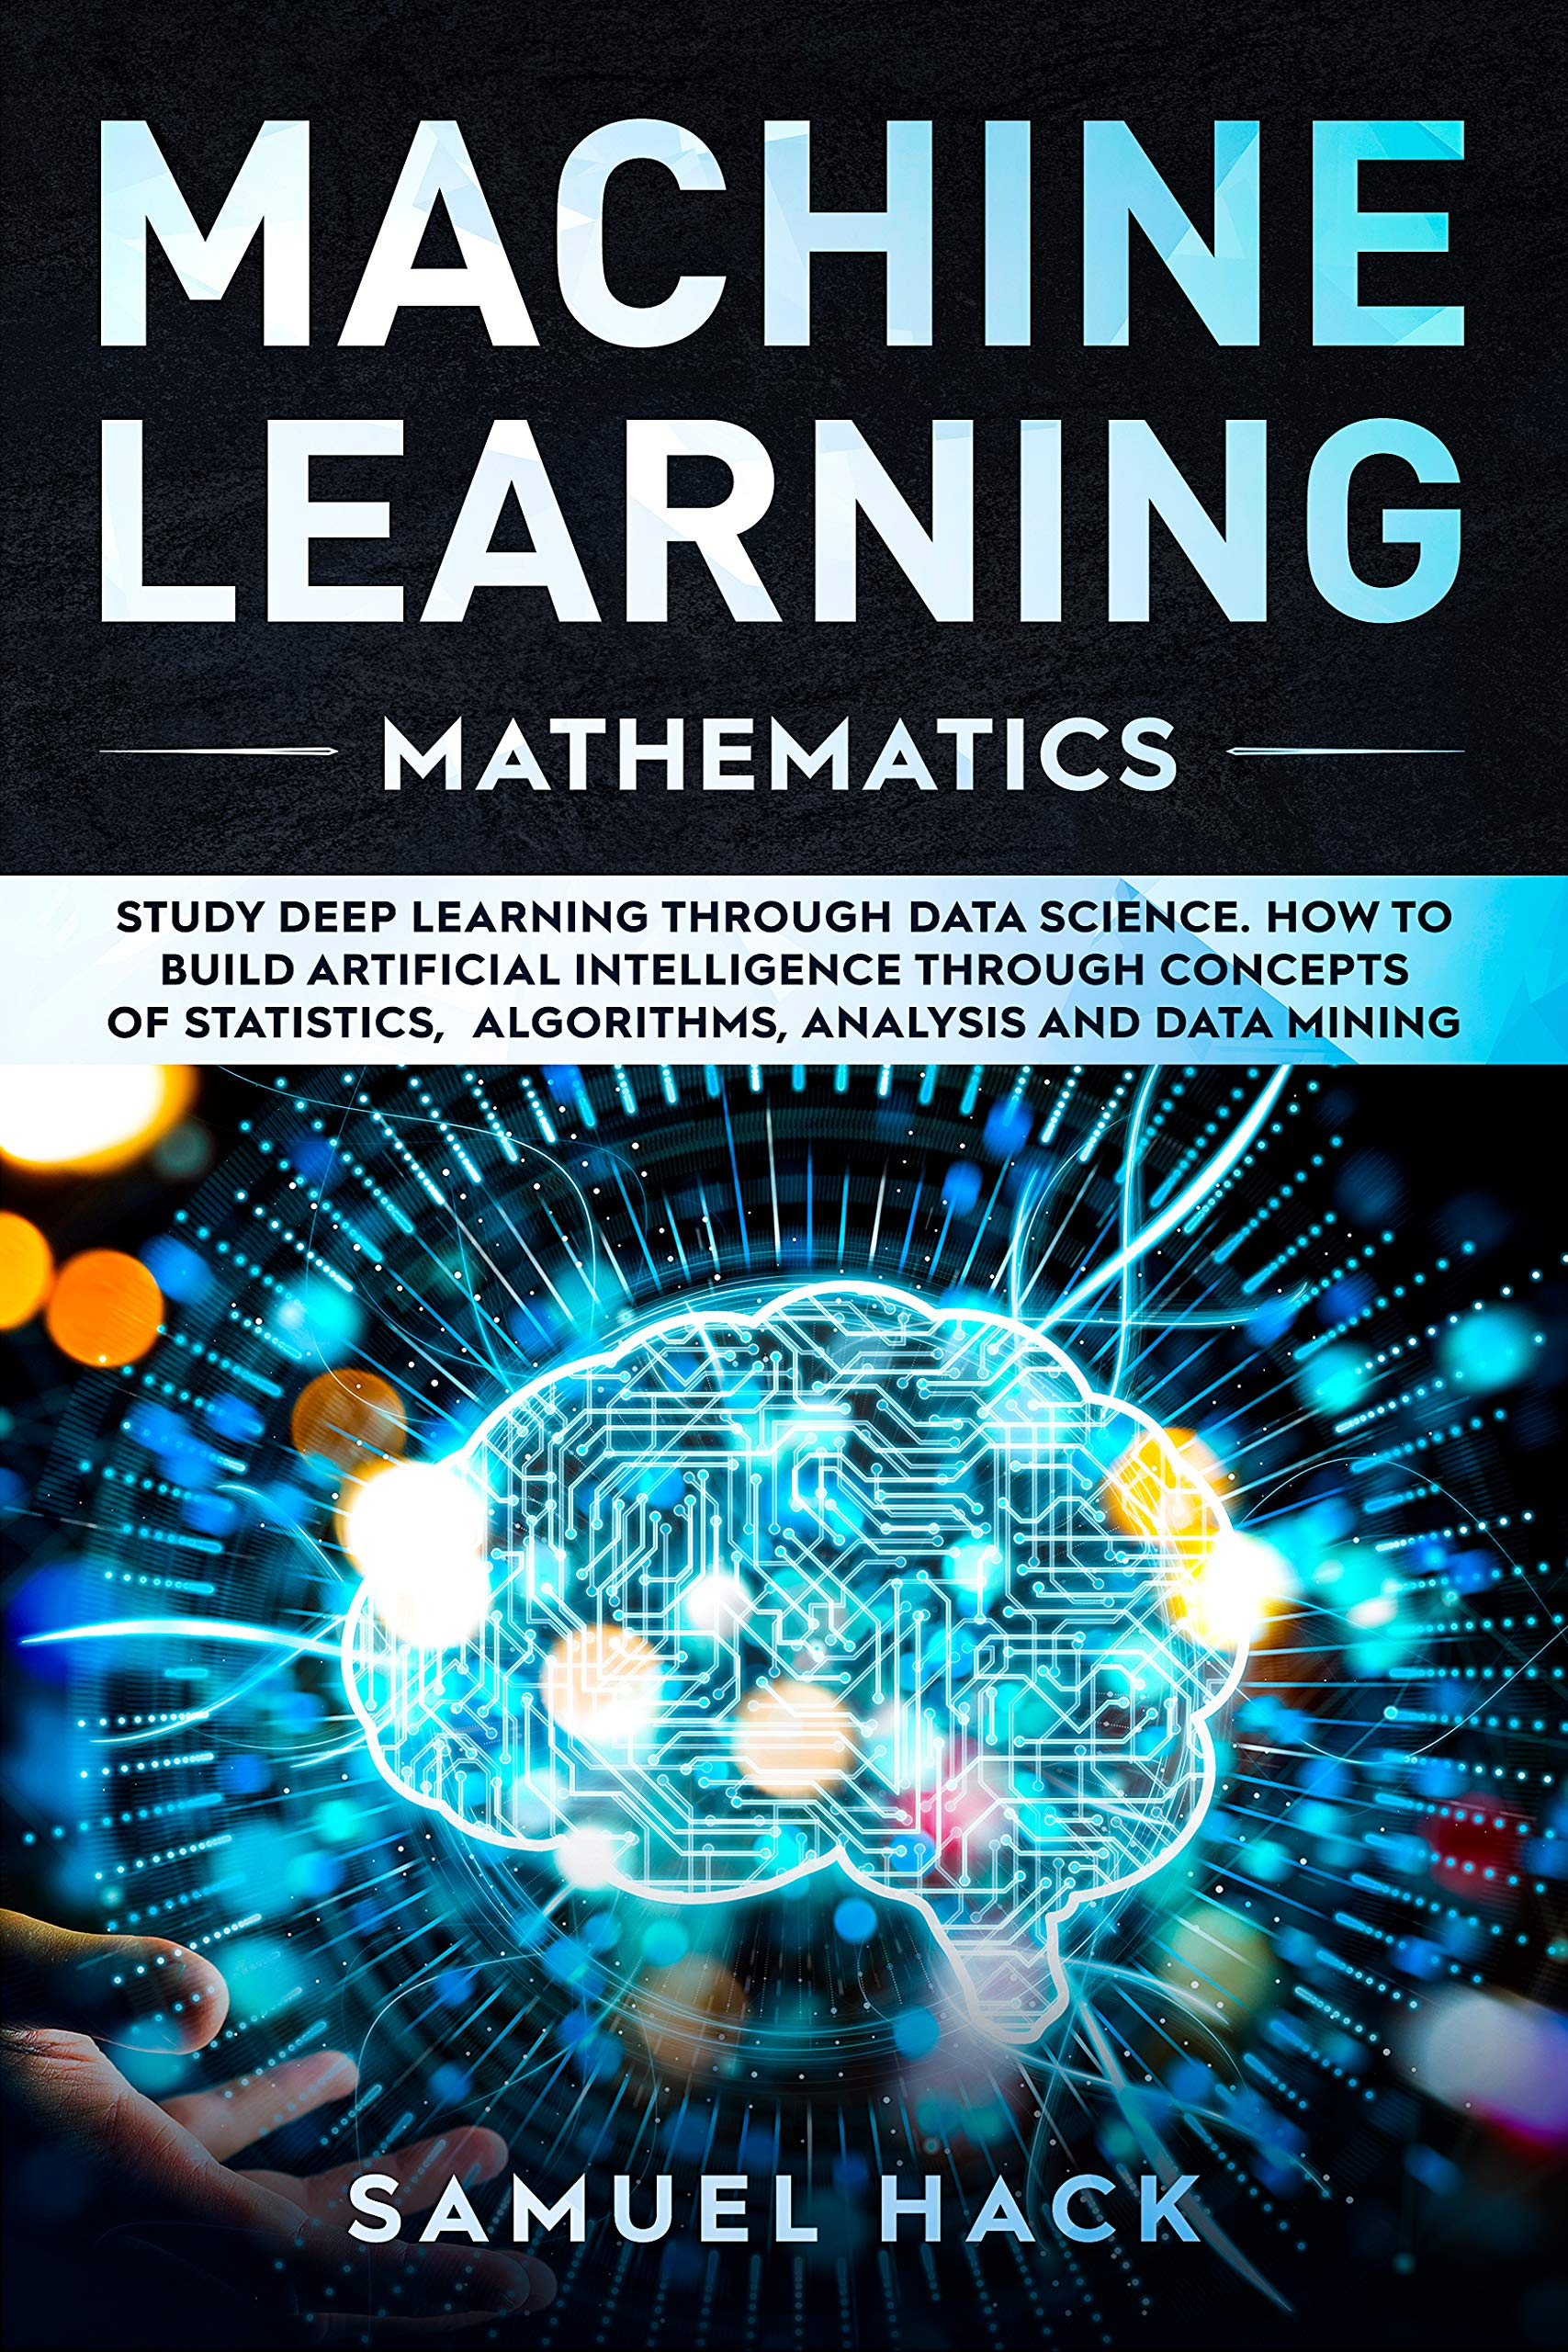 Image OfMachine Learning Mathematics: Study Deep Learning Through Data Science. How To Build Artificial Intelligence Through Conce...